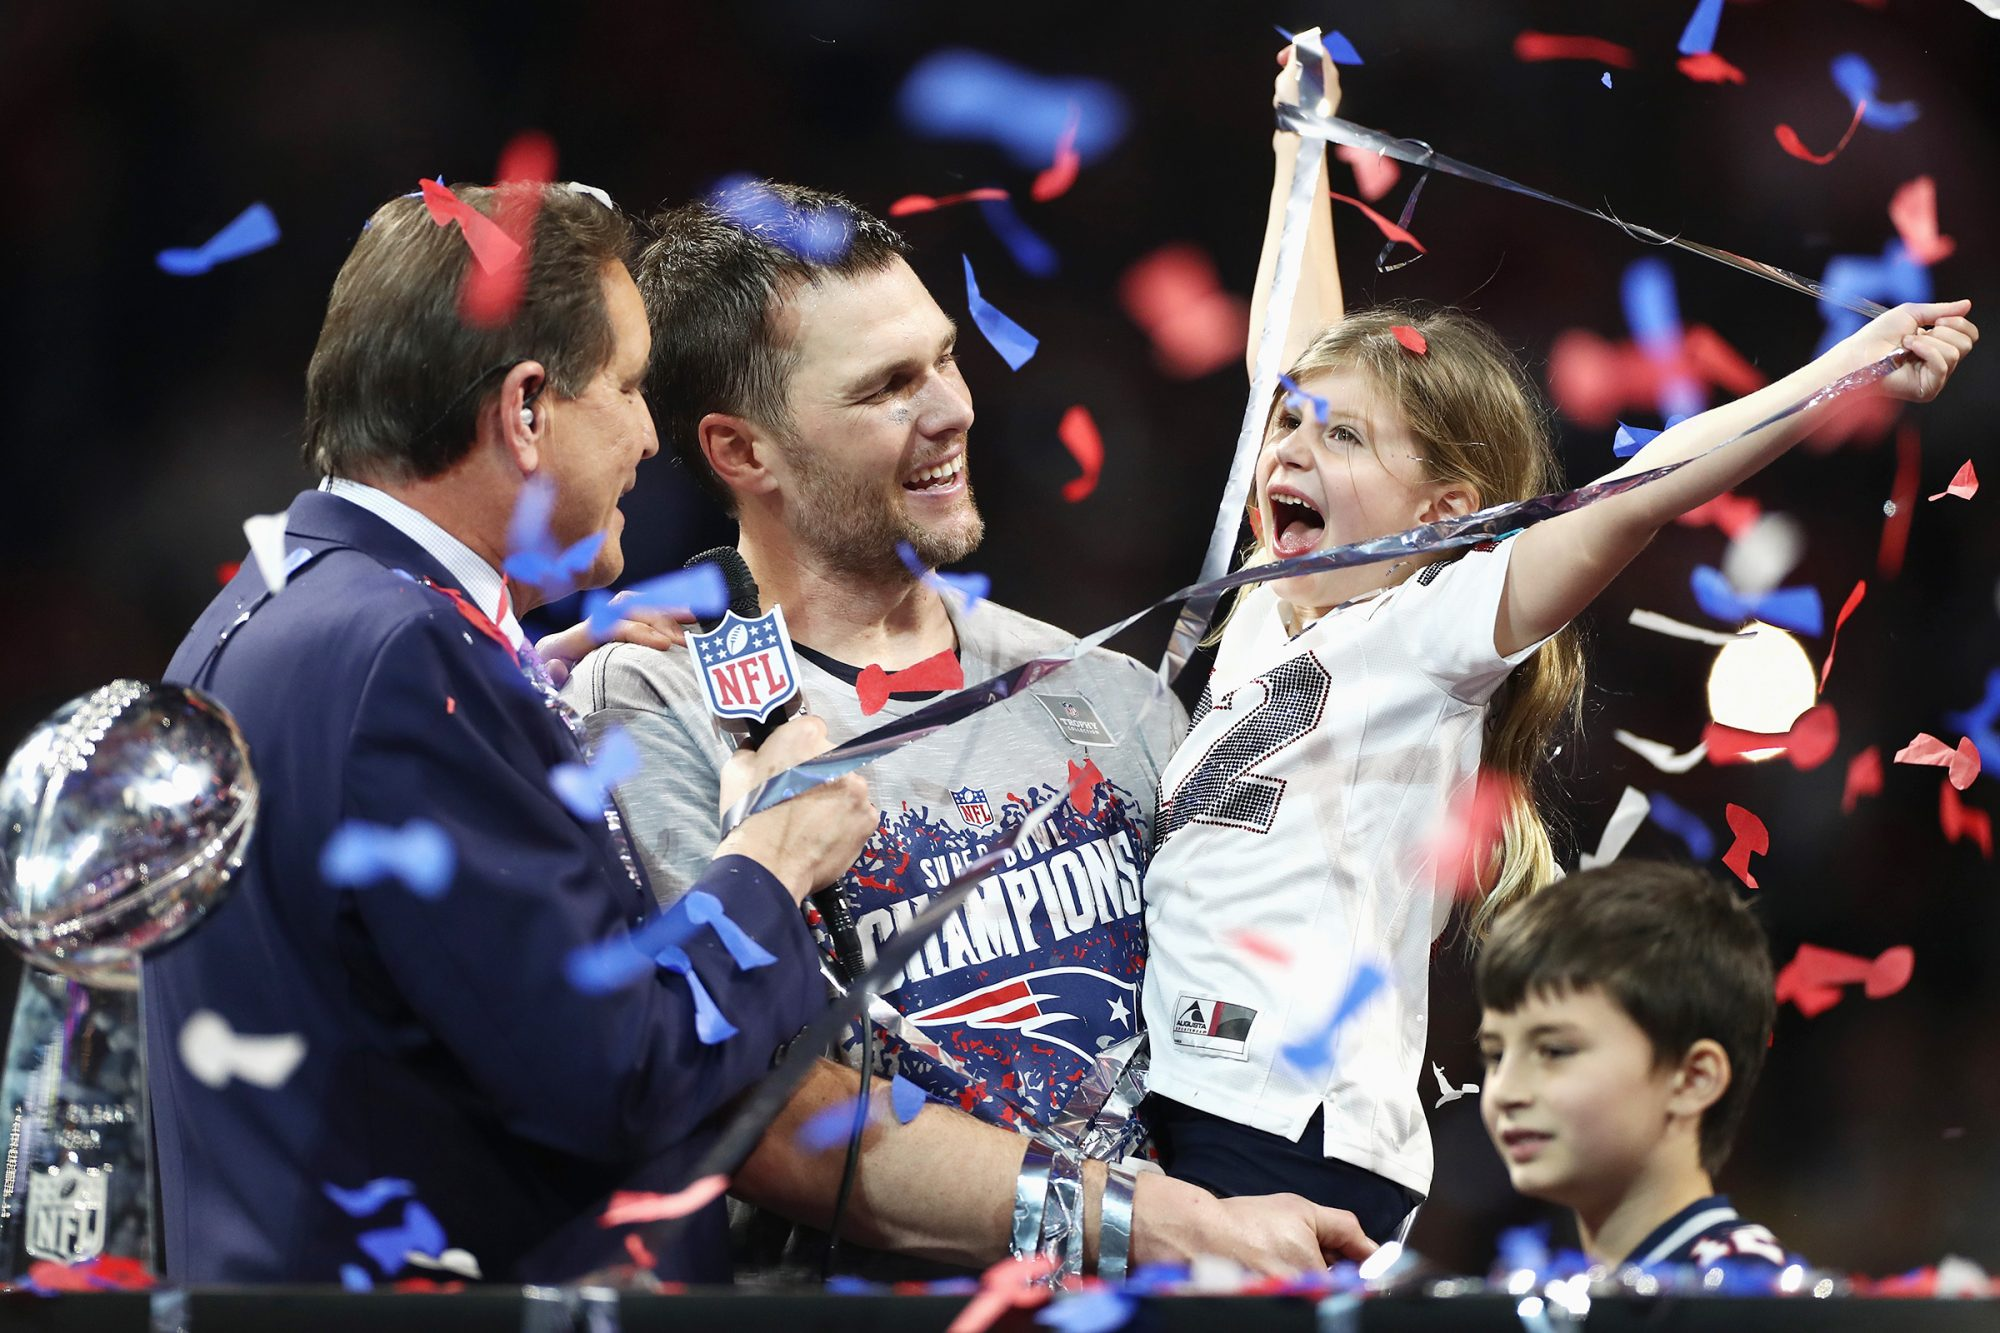 Vivian Lake Brady, daughter of Tom Brady #12, celebrates the Patriots' 13-3 win over the Los Angeles Rams during Super Bowl LIII at Mercedes-Benz Stadium on February 3, 2019 in Atlanta, Georgia